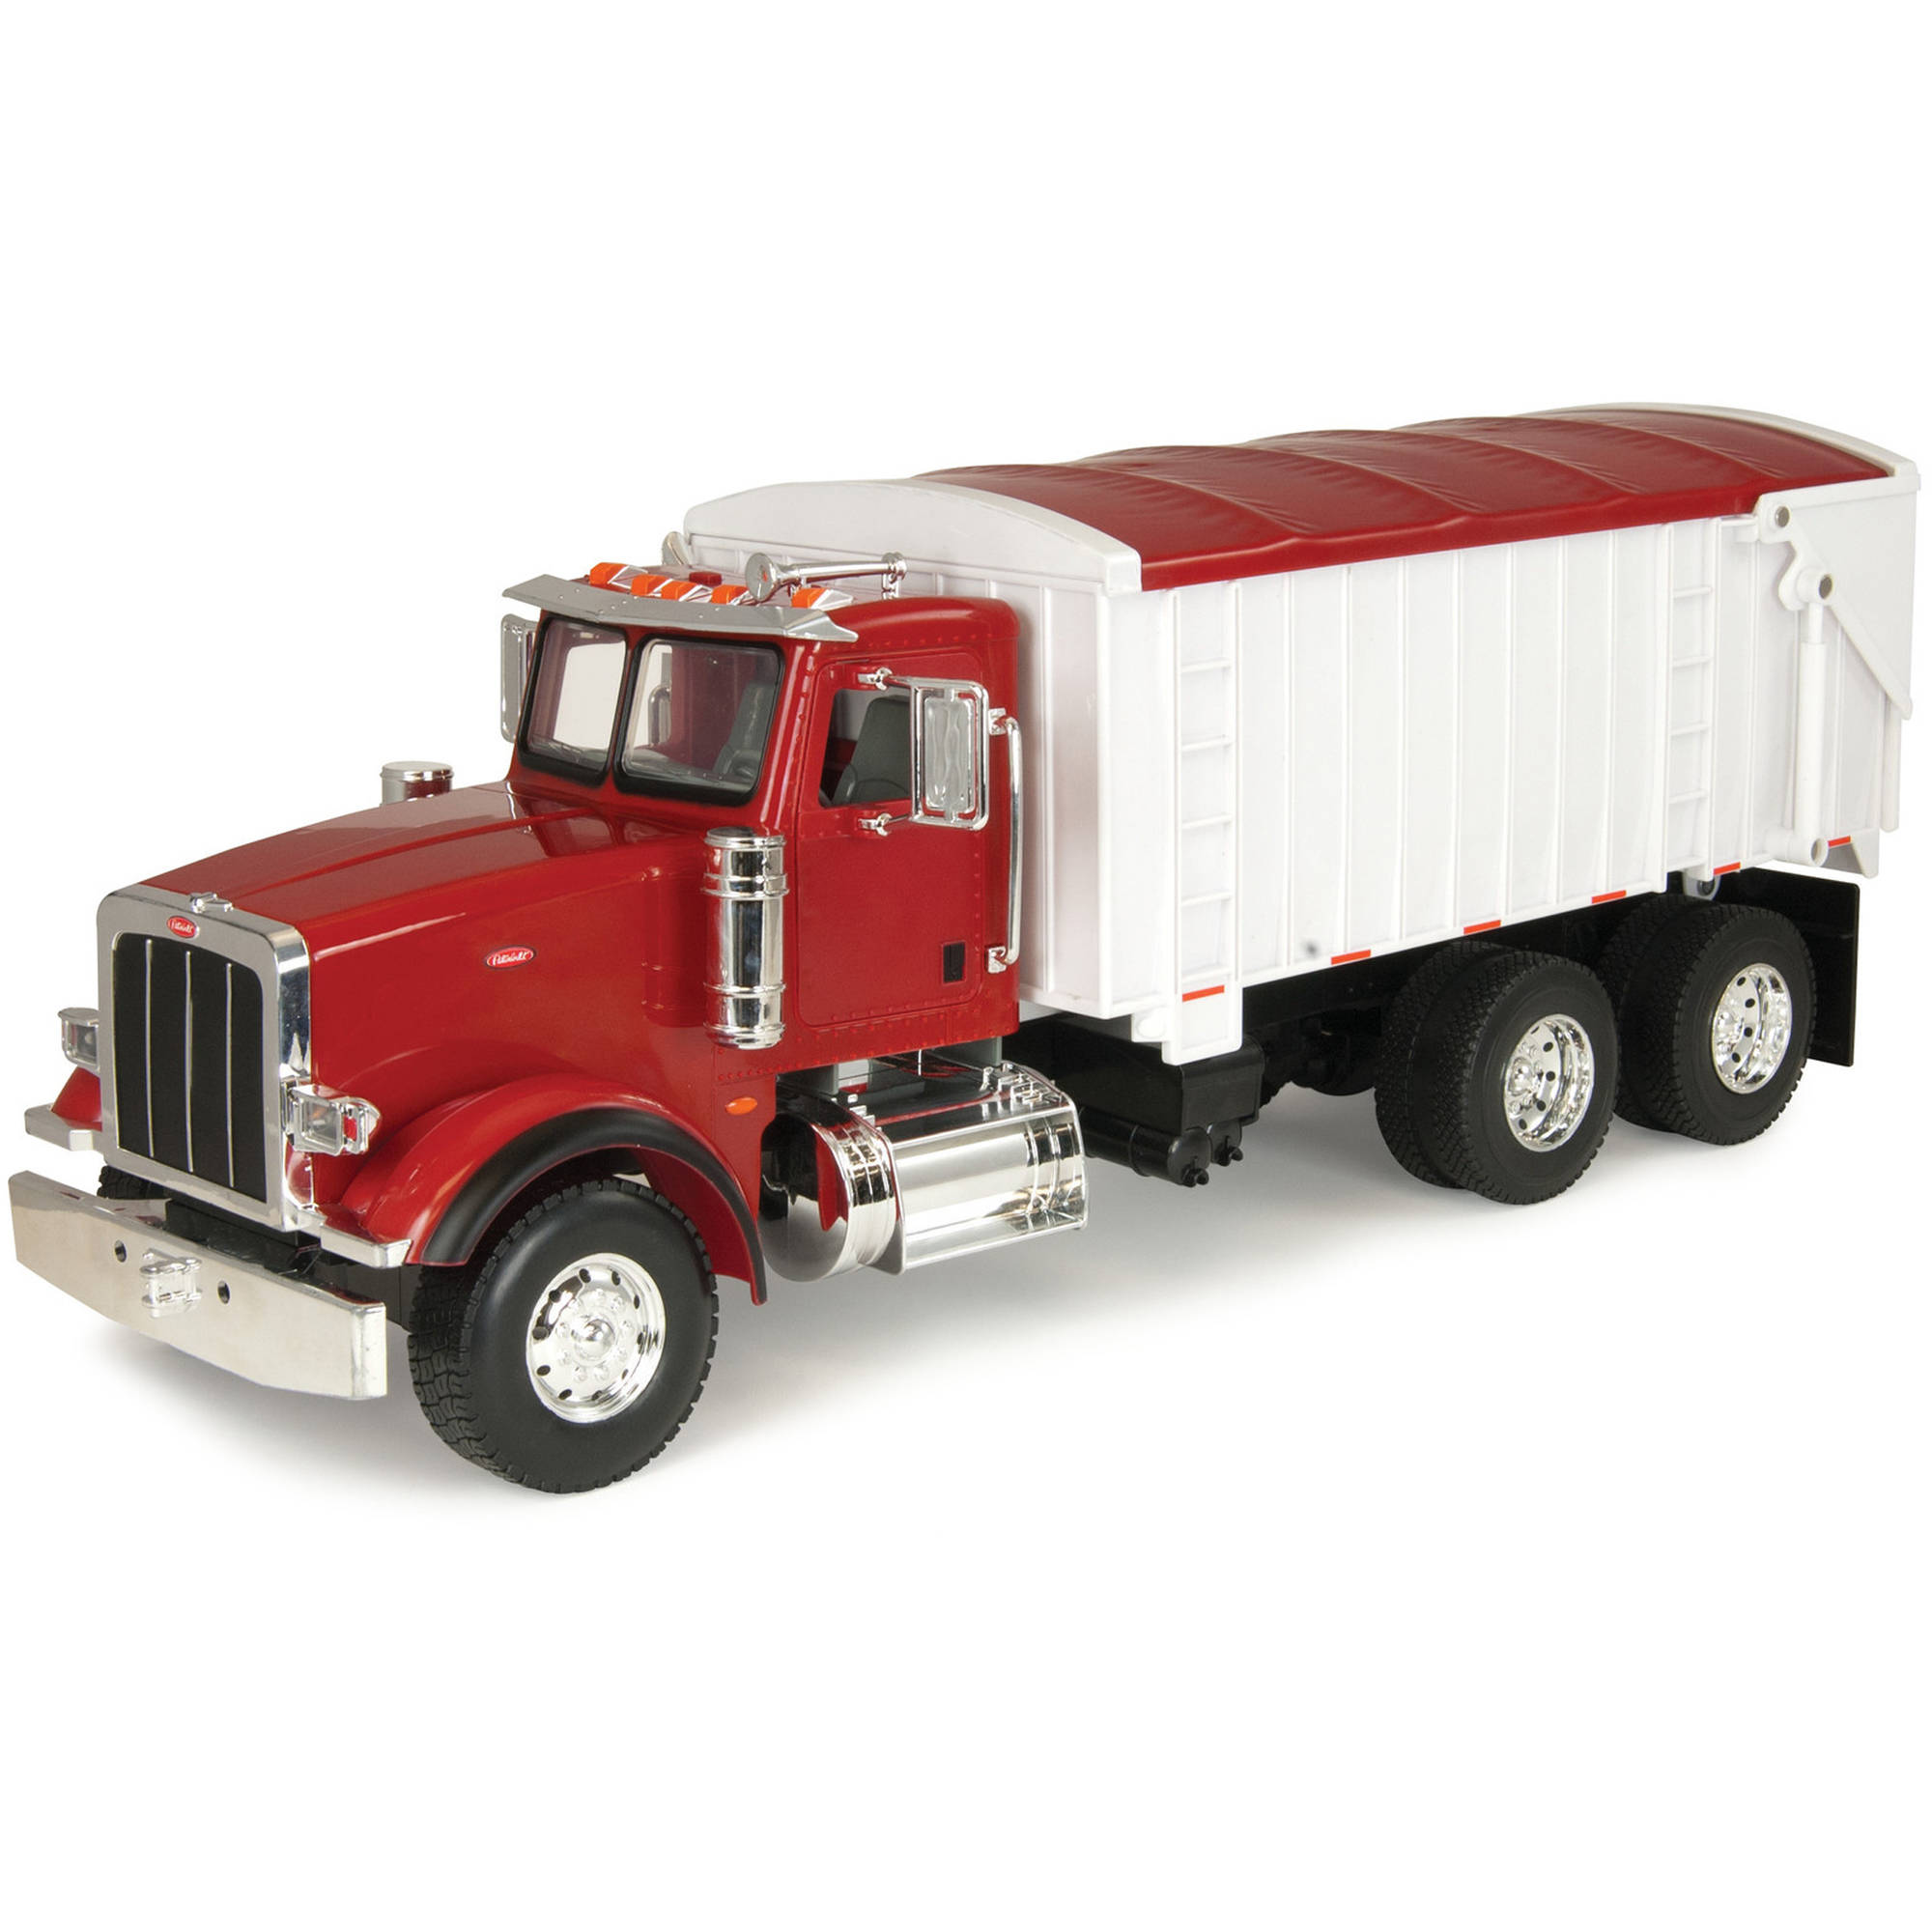 TOMY 1:16 Scale Big Farm Peterbilt with Grain Box Diecast Vehicle by TOMY